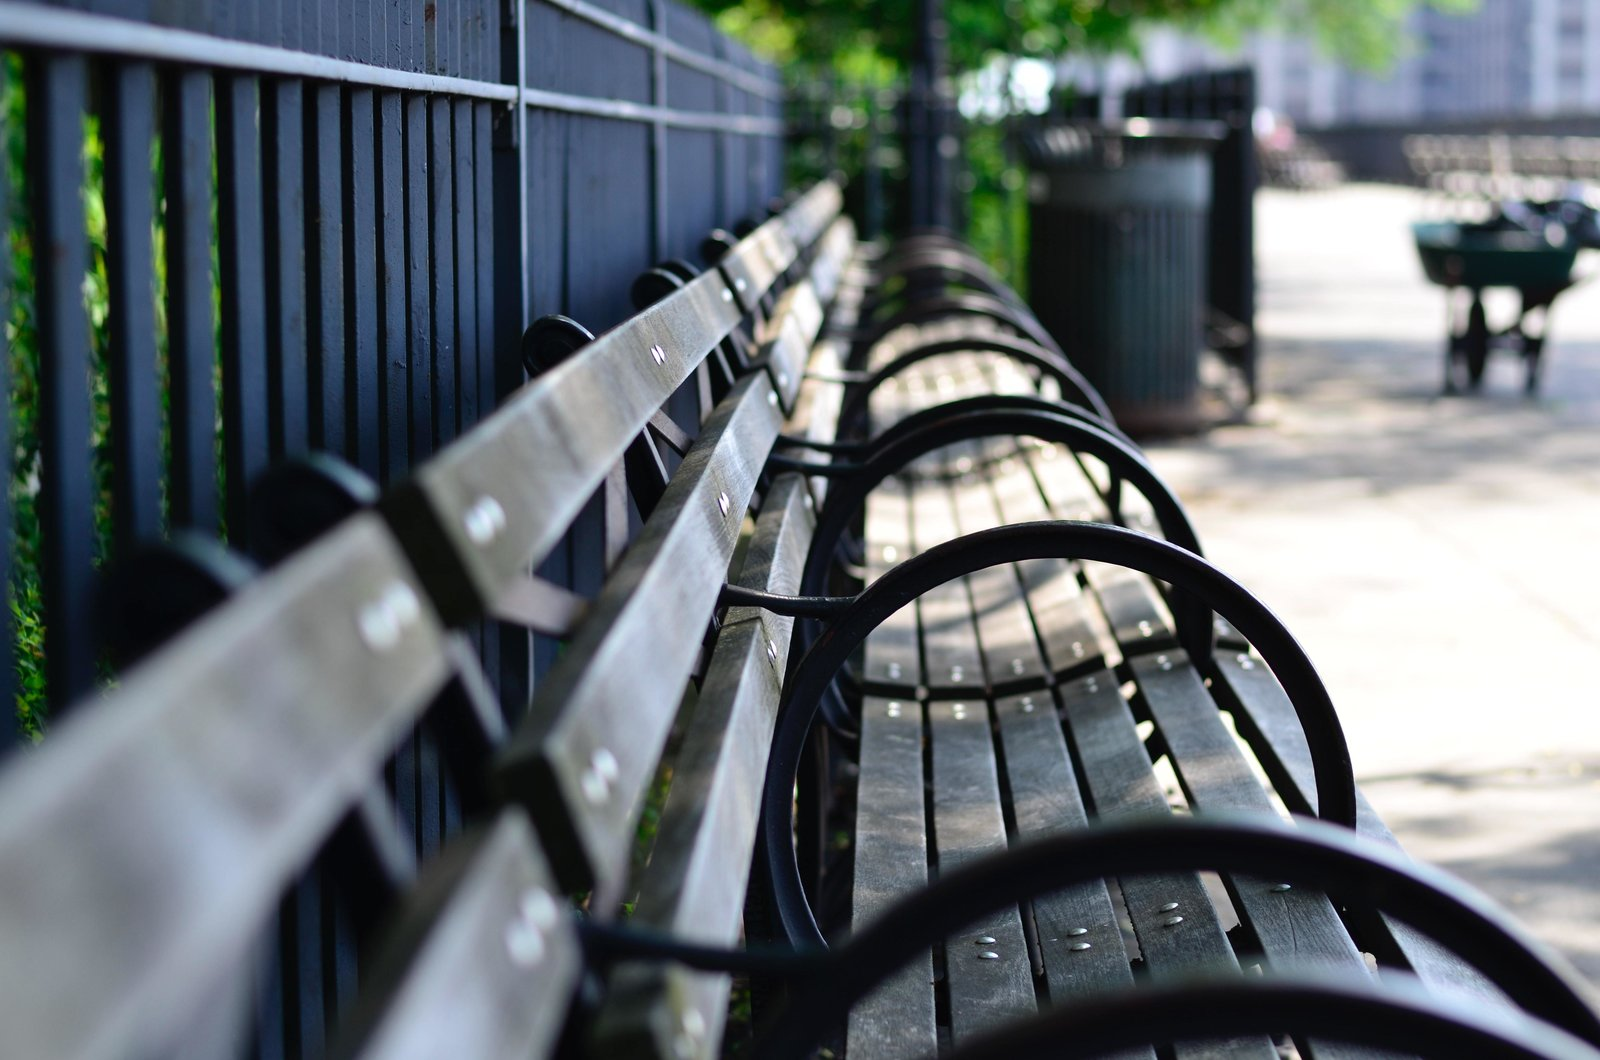 Photo 1 of 9 in In Times of Crisis, Hostile Architecture Poses a Bigger Threat Than Ever